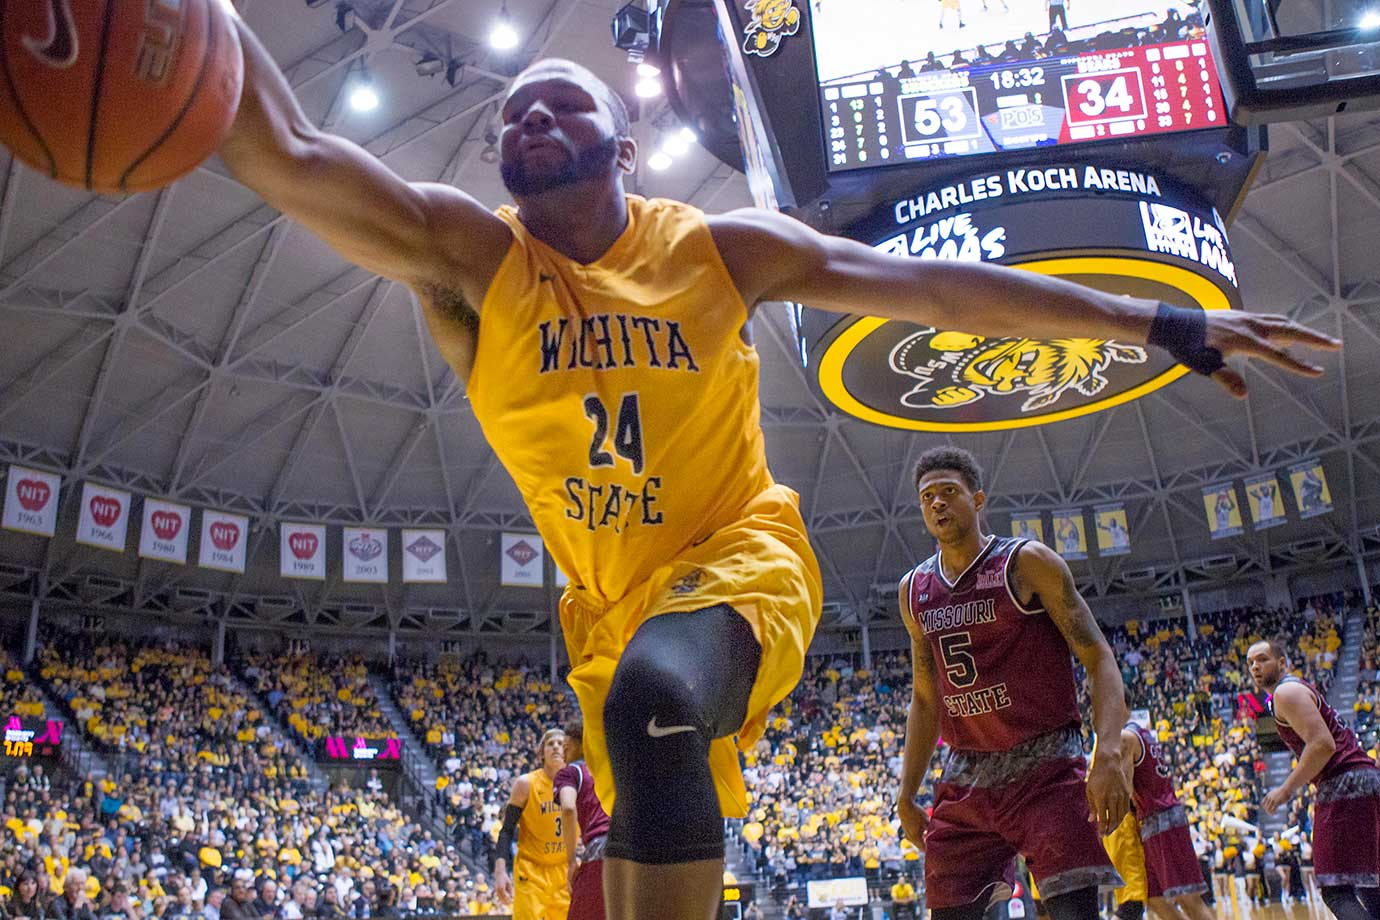 Wichita State's Shaquille Morris attempts to save a ball from going out of bounds during a game against Missouri State.